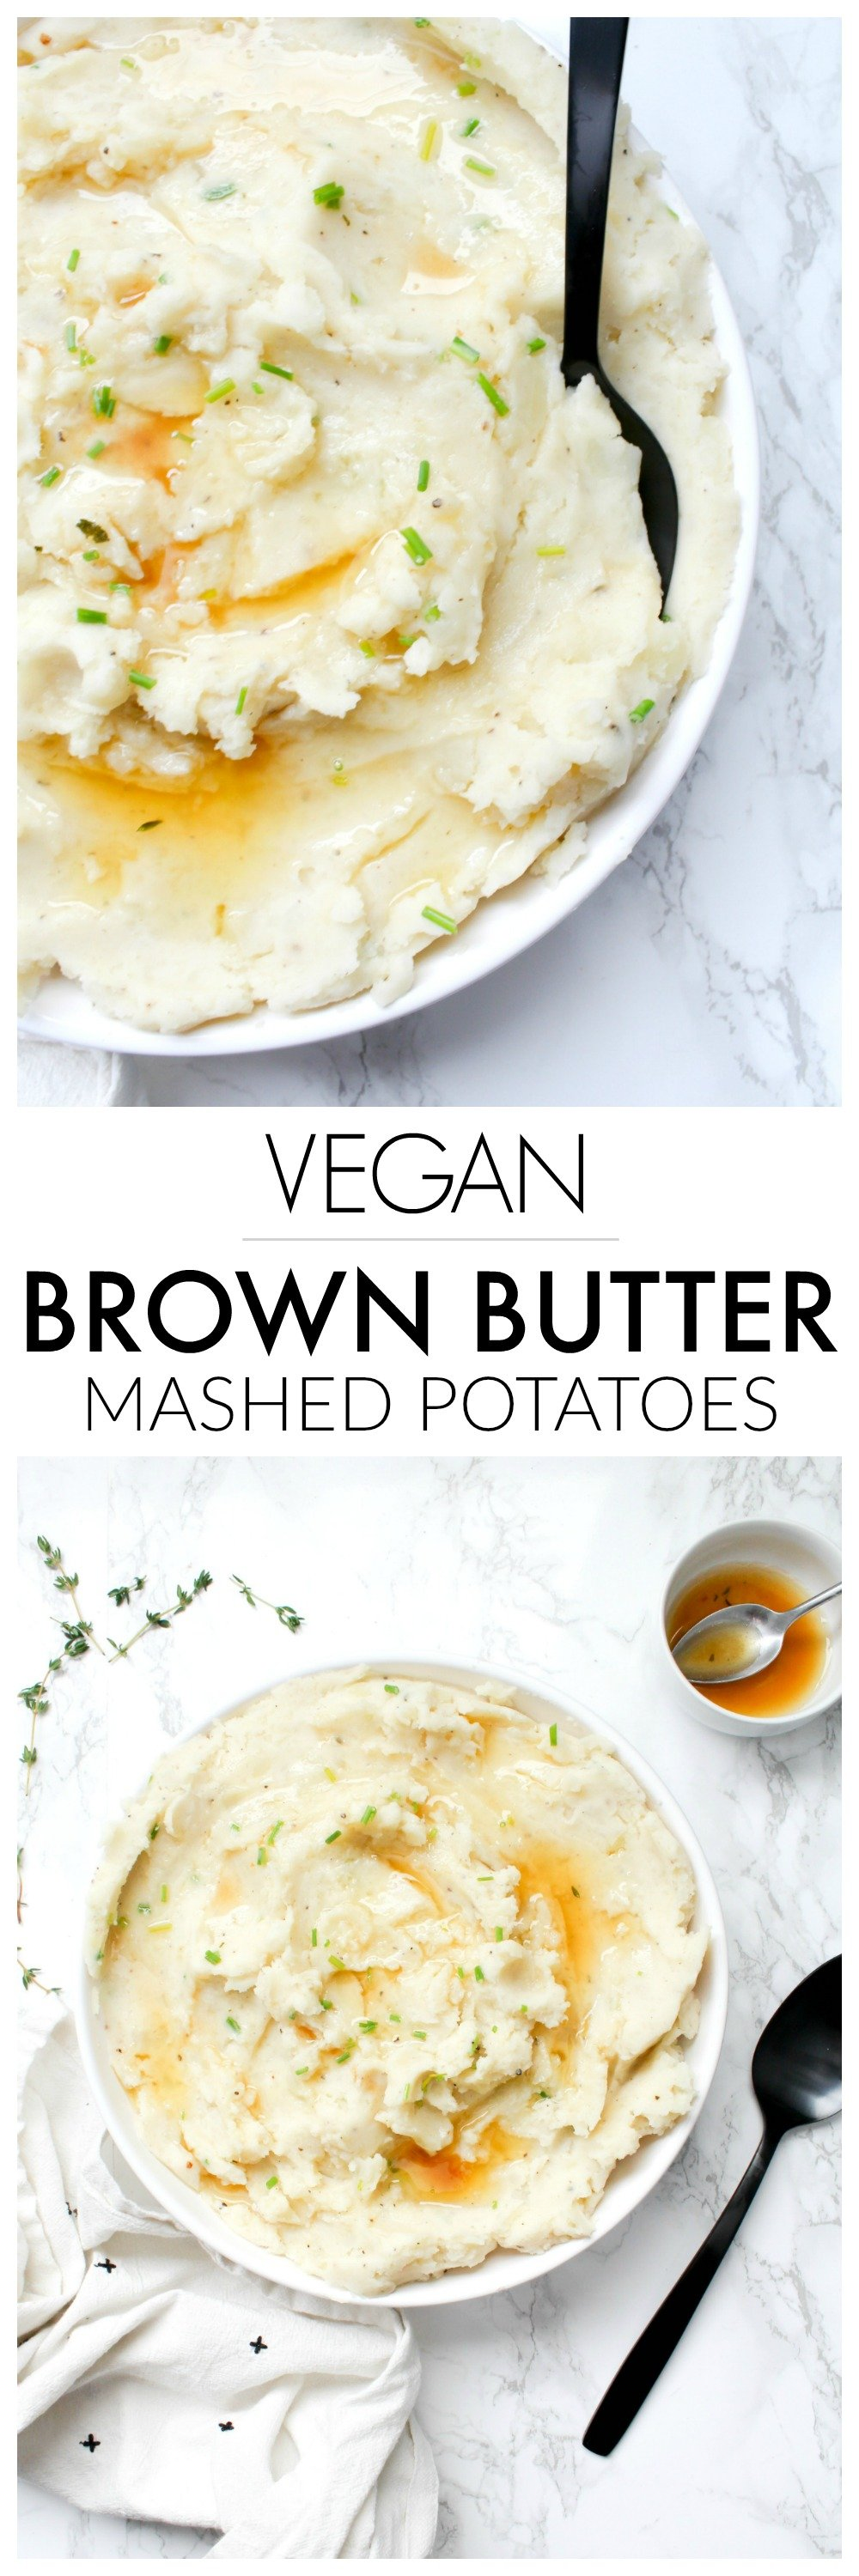 TheseVegan Brown Butter Mashed Potatoes are what potato dreams are made of - these will be the star of the show at your next holiday dinner | ThisSavoryVegan.com #thissavoryvegan #veganthanksgiving #mashedpotatoes